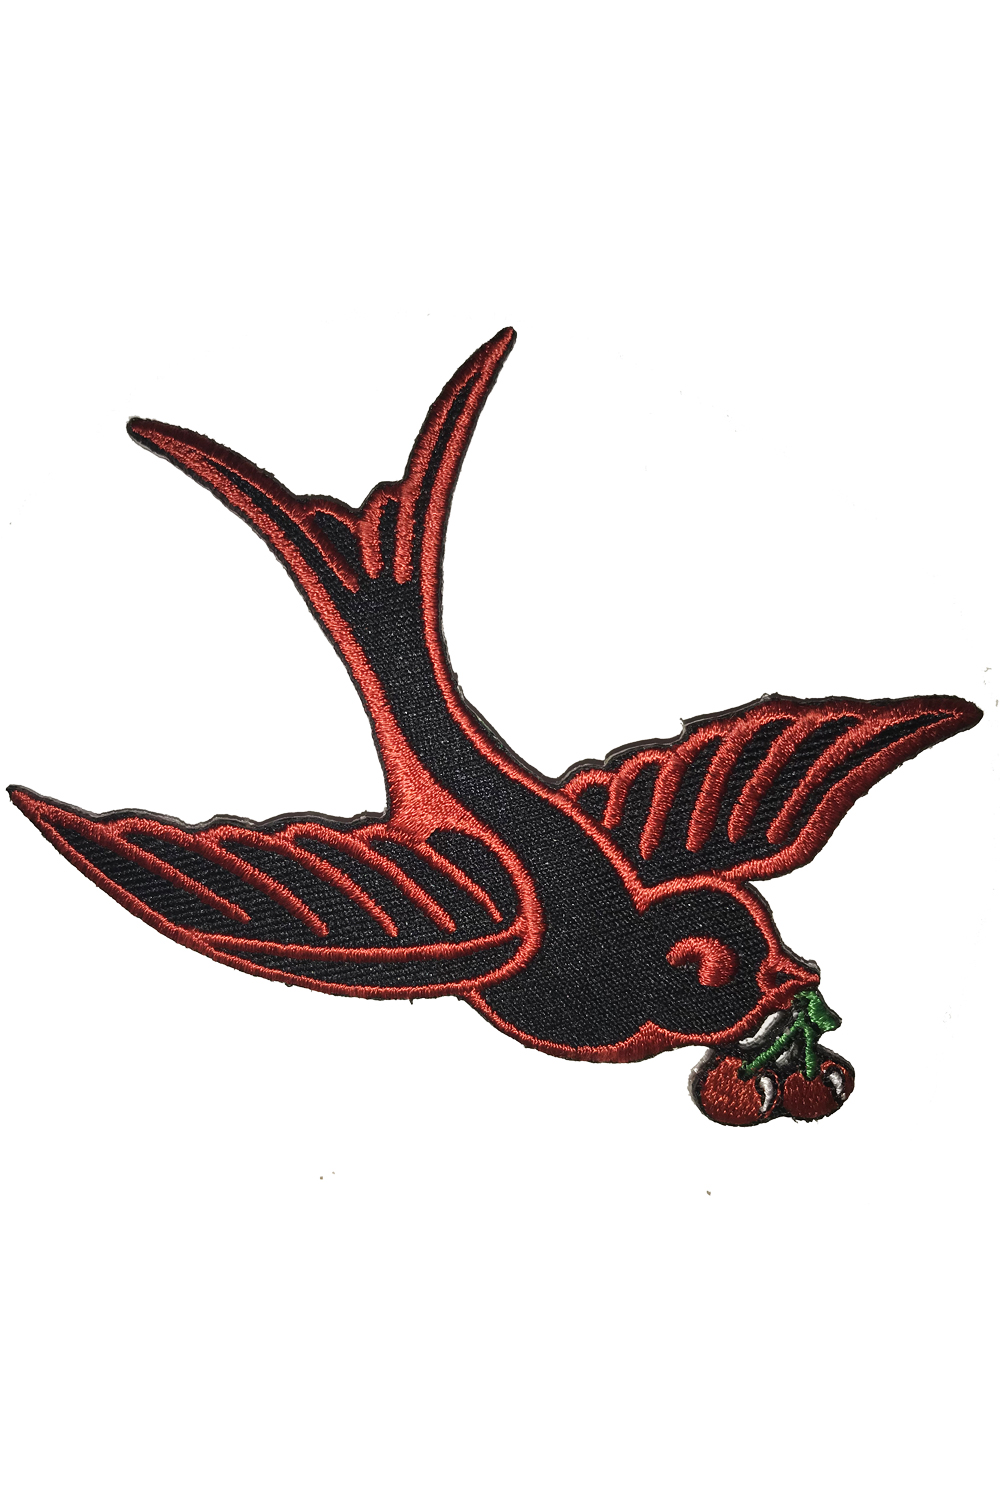 Cherry Swallow retro Schwalben Kirschen rockabilly Patch Aufnäher